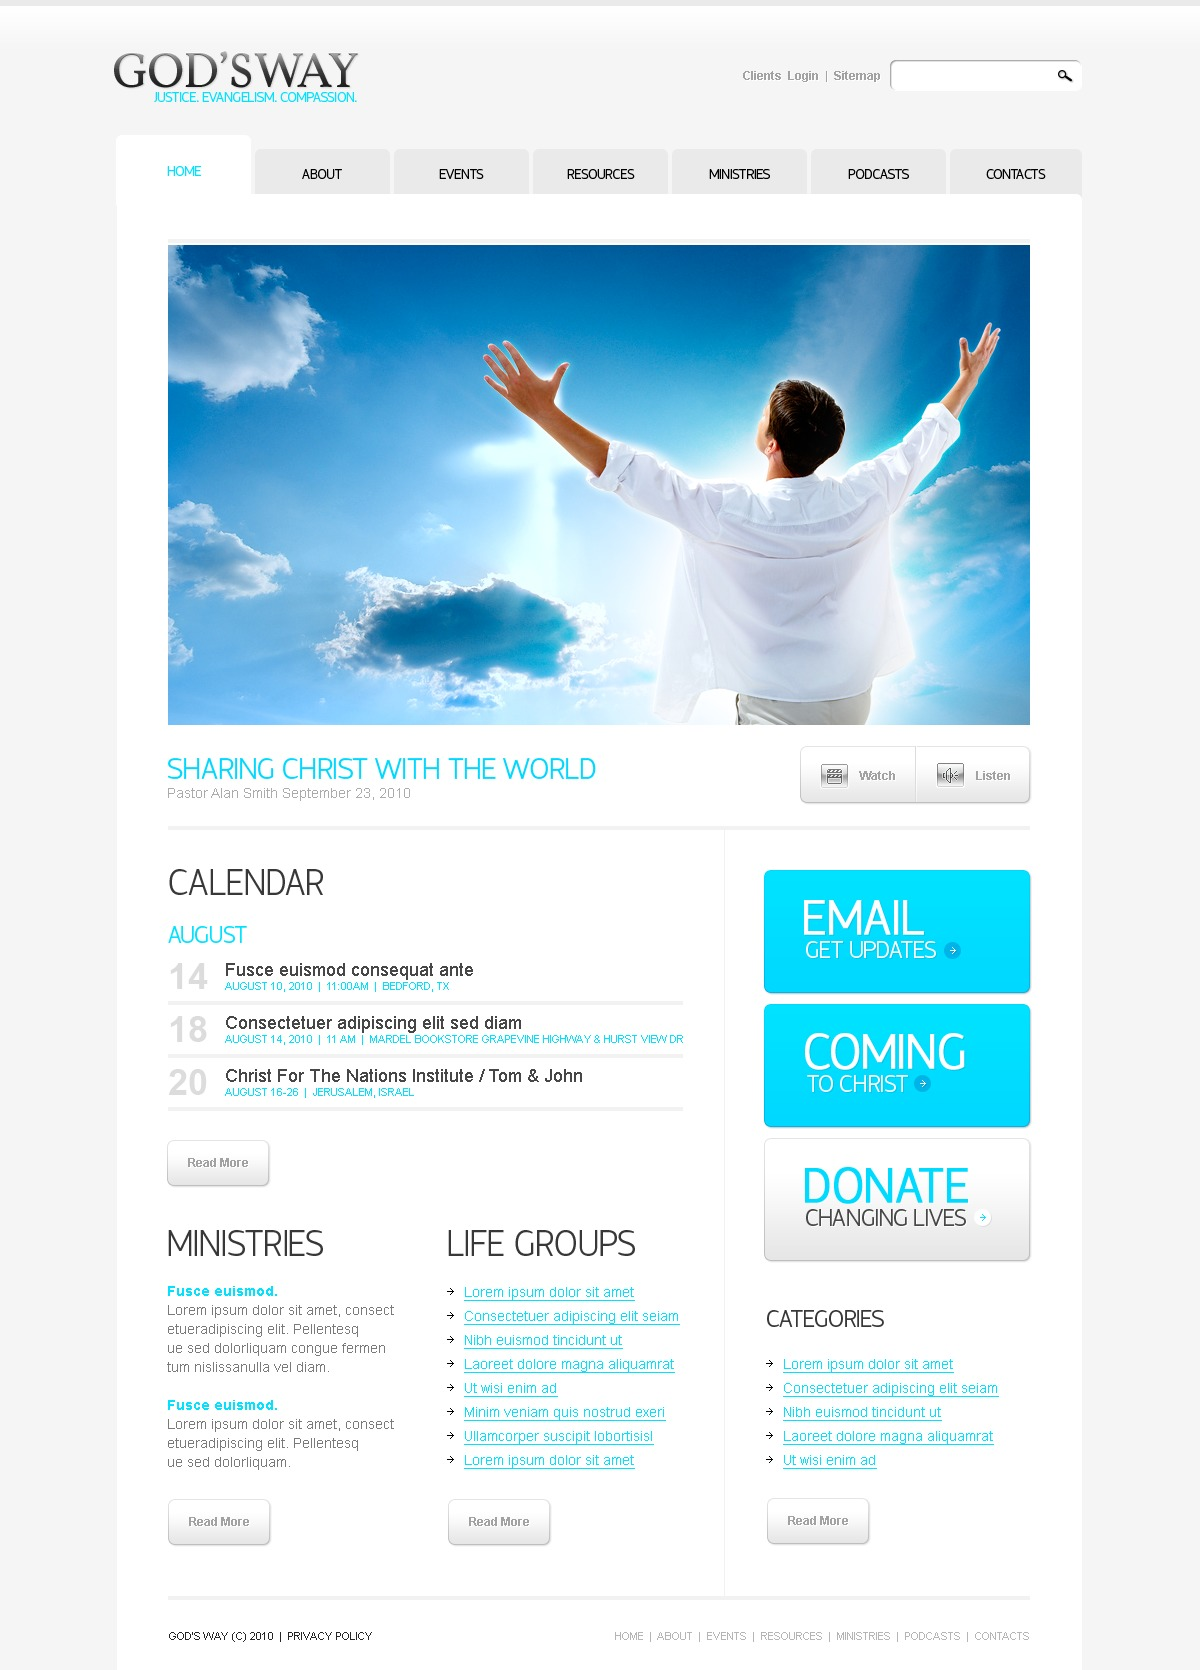 The God Way Church PSD Design 54412, one of the best PSD templates of its kind (religious, wide), also known as God Way church PSD template, religious PSD template, religion PSD template, God family care PSD template, education PSD template, Bible mission PSD template, community PSD template, sermon PSD template, priest PSD template, clergyman PSD template, choir PSD template, health PSD template, Sunday school PSD template, archive PSD template, credence PSD template, faith PSD template, belief in God kindness PSD template, confession PSD template, homily PSD template, sermon PSD template, help PSD template, support PSD template, Christian catholic PSD template, prayer and related with God Way church, religious, religion, God family care, education, Bible mission, community, sermon, priest, clergyman, choir, health, Sunday school, archive, credence, faith, belief in God kindness, confession, homily, sermon, help, support, Christian catholic, prayer, etc.